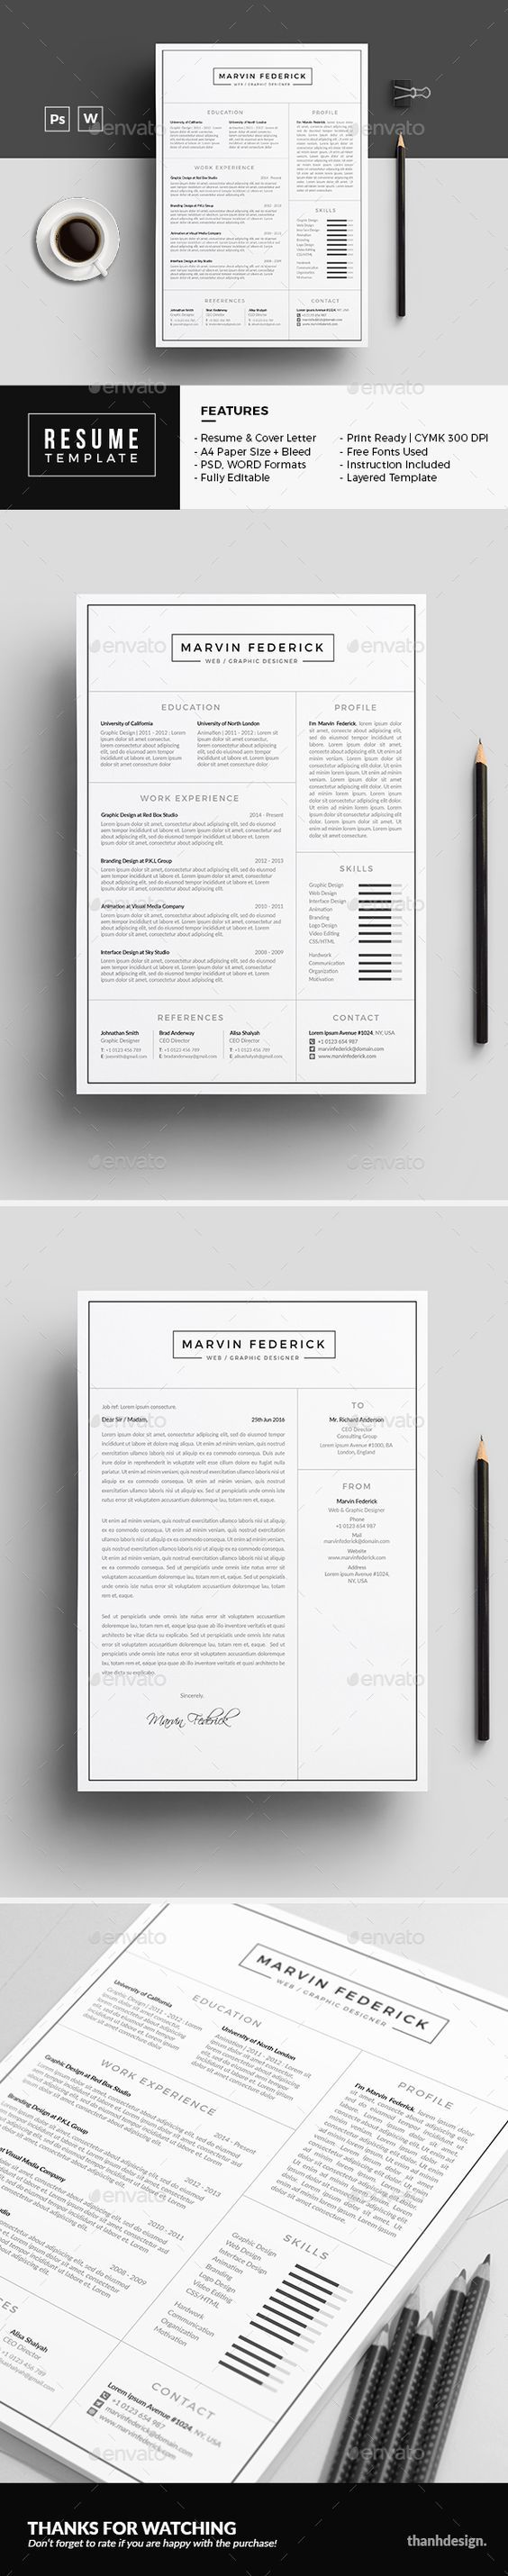 Resume / Curriculum Vitae / Design / Ideas / Inspiration / Clean ...